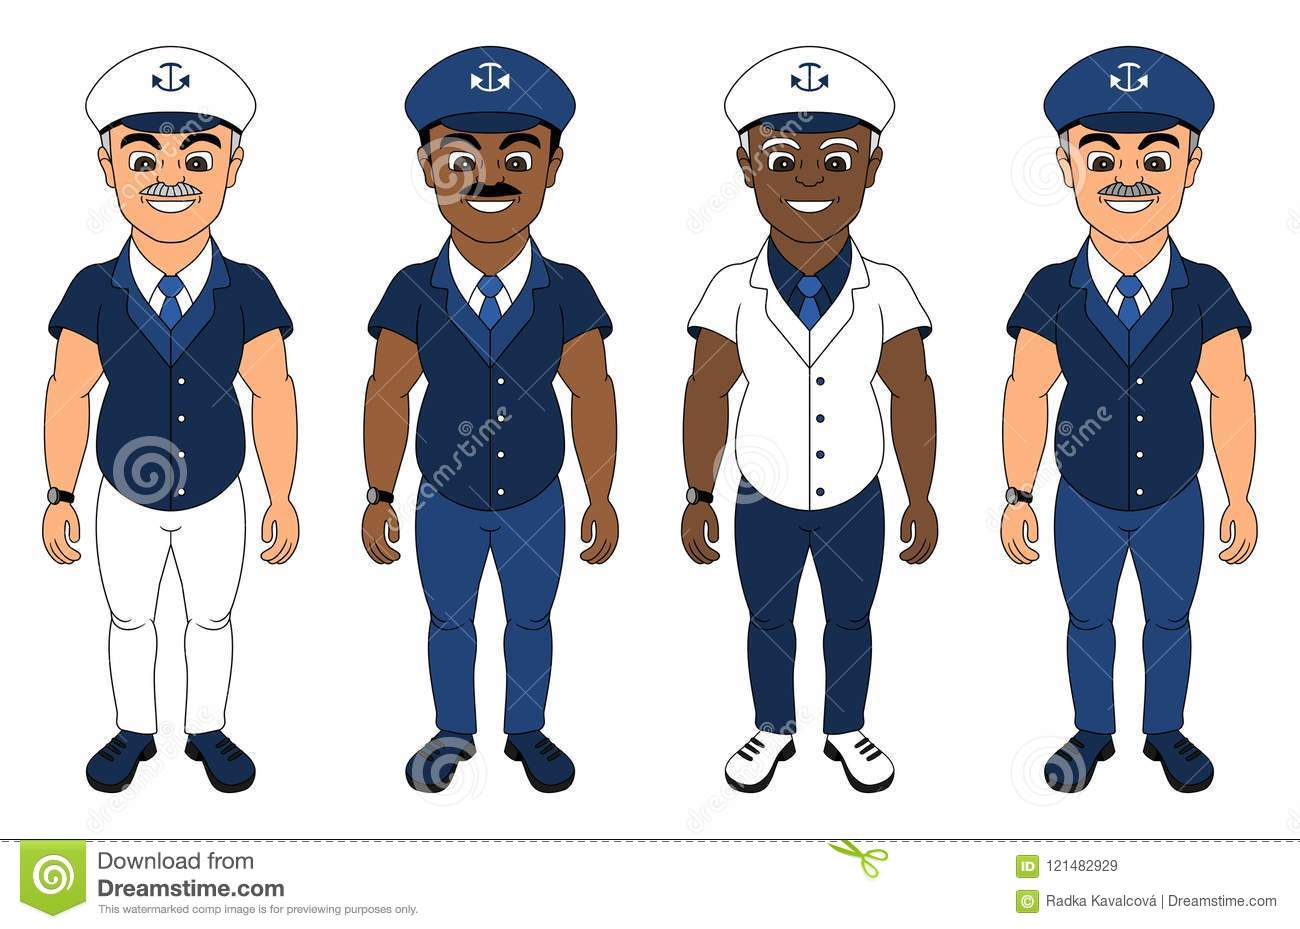 Diverse men in captain uniforms cartoon